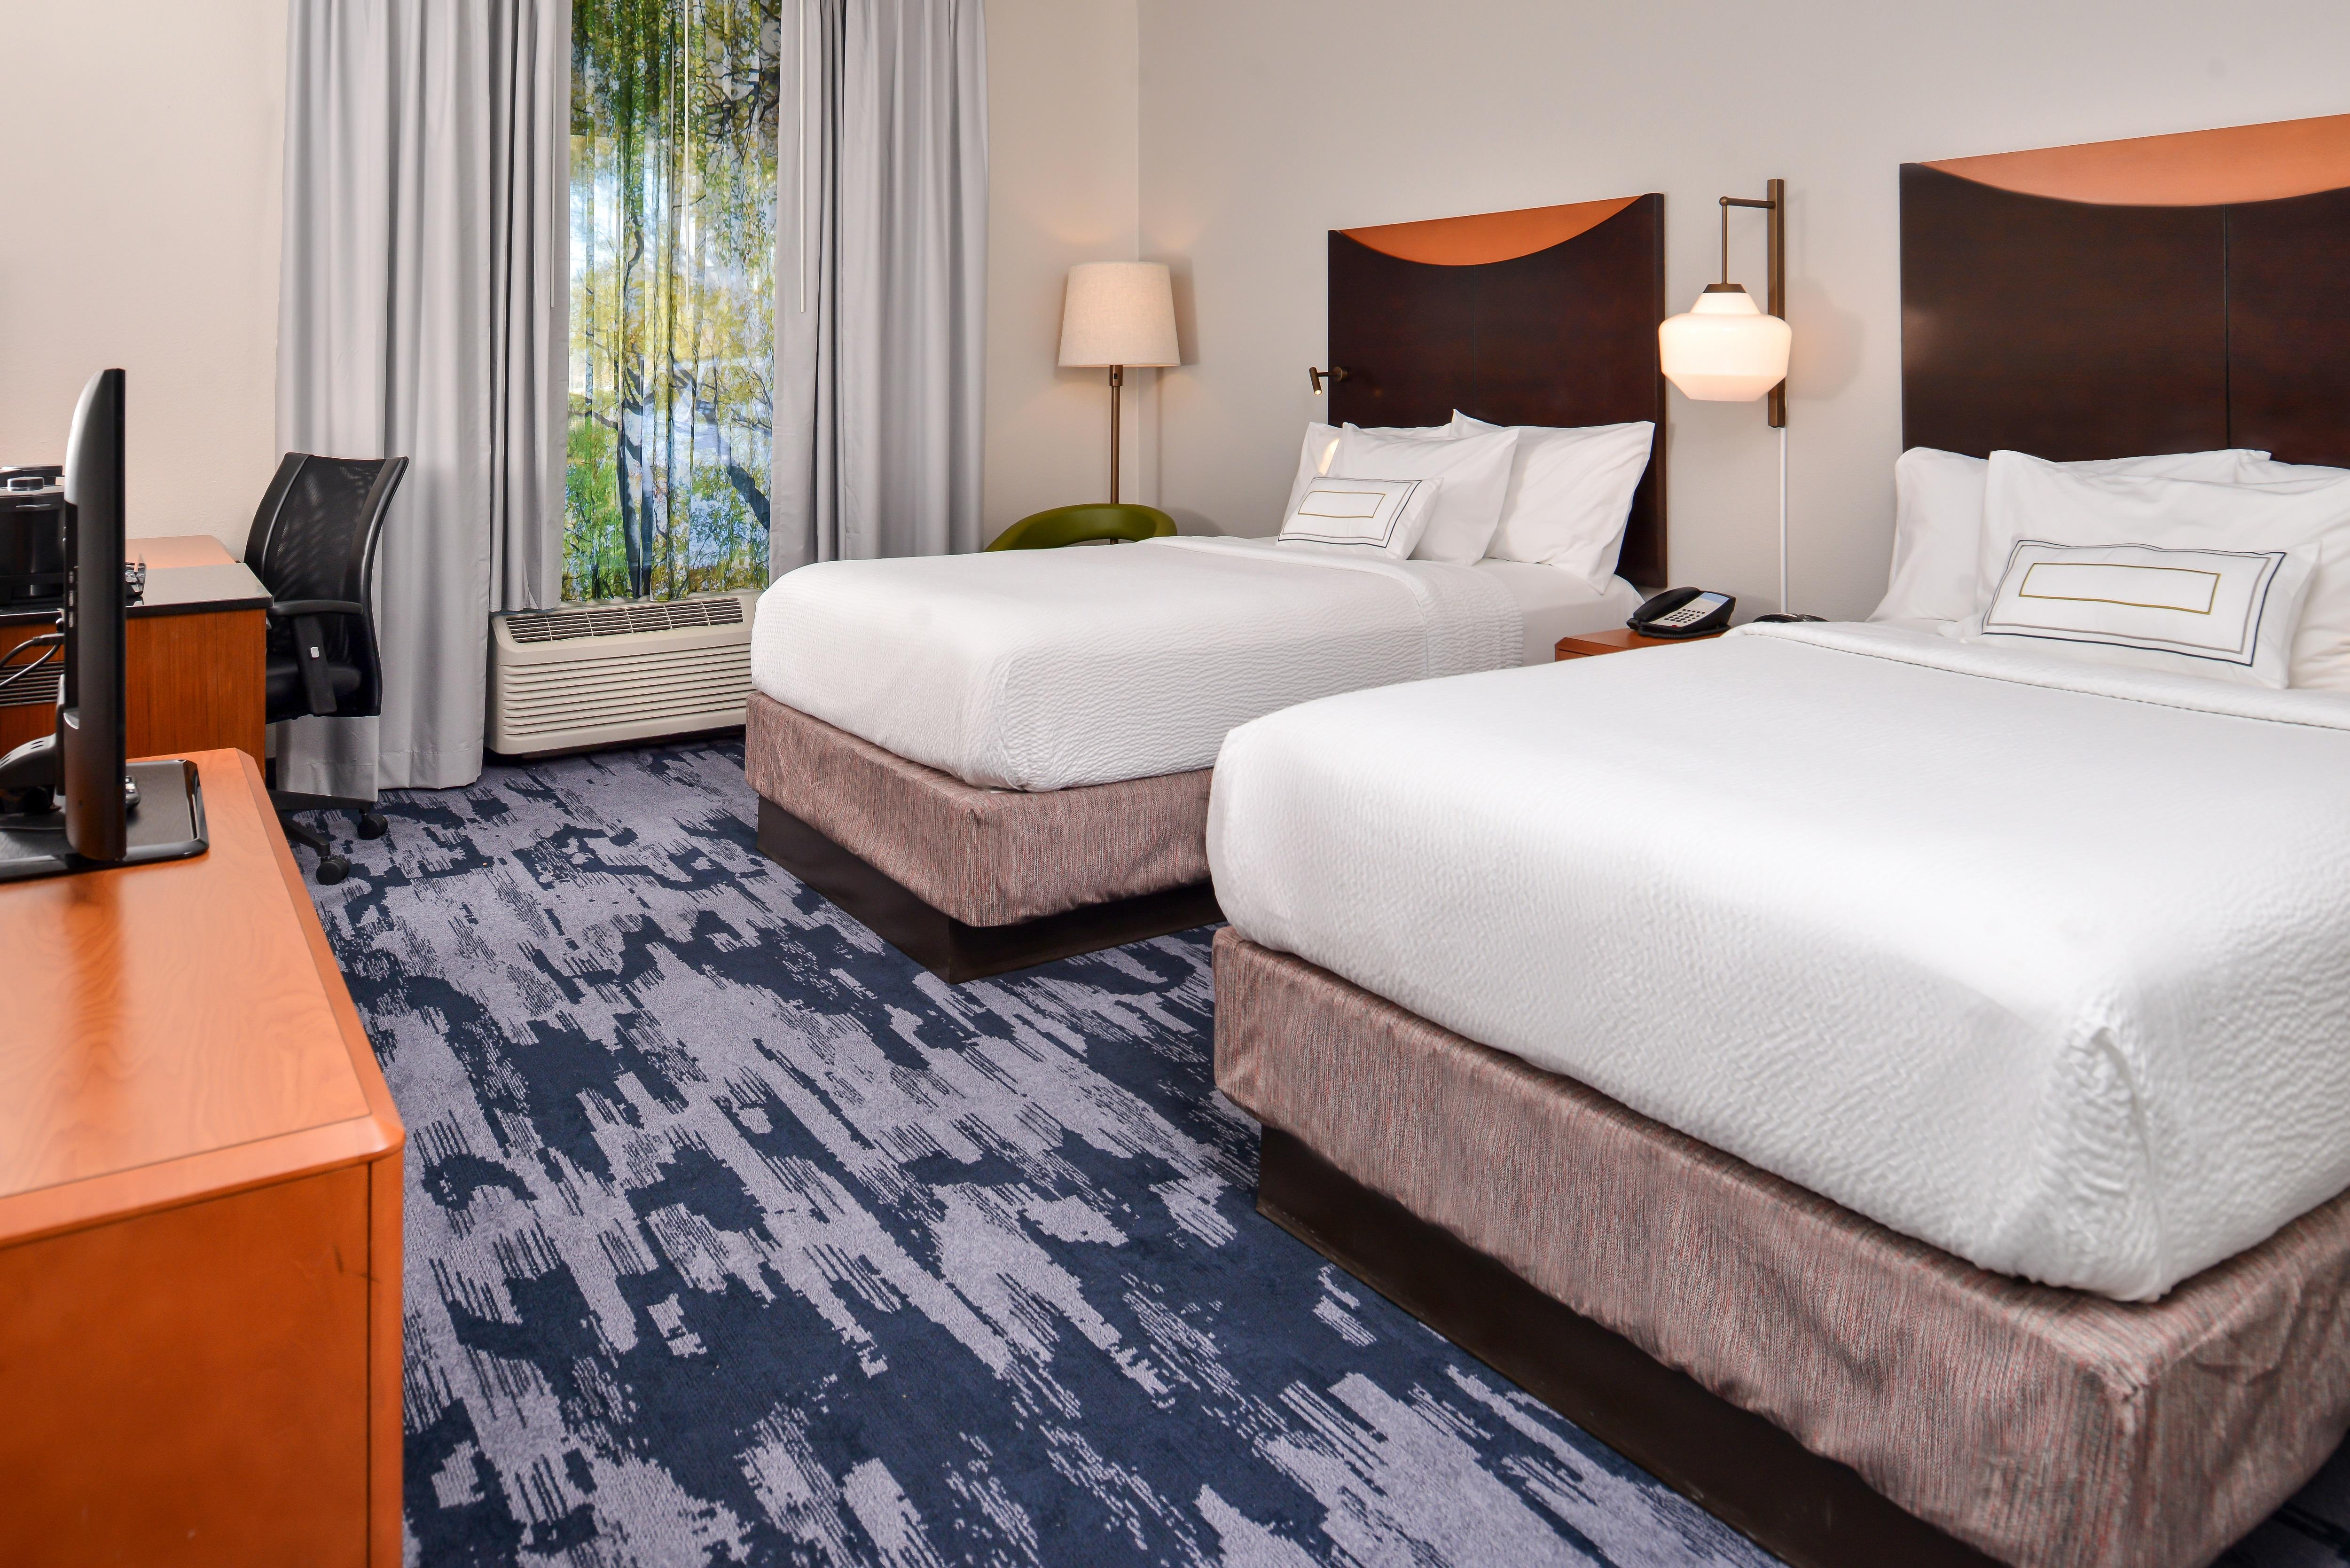 Fairfield Inn & Suites by Marriott Ocala image 1